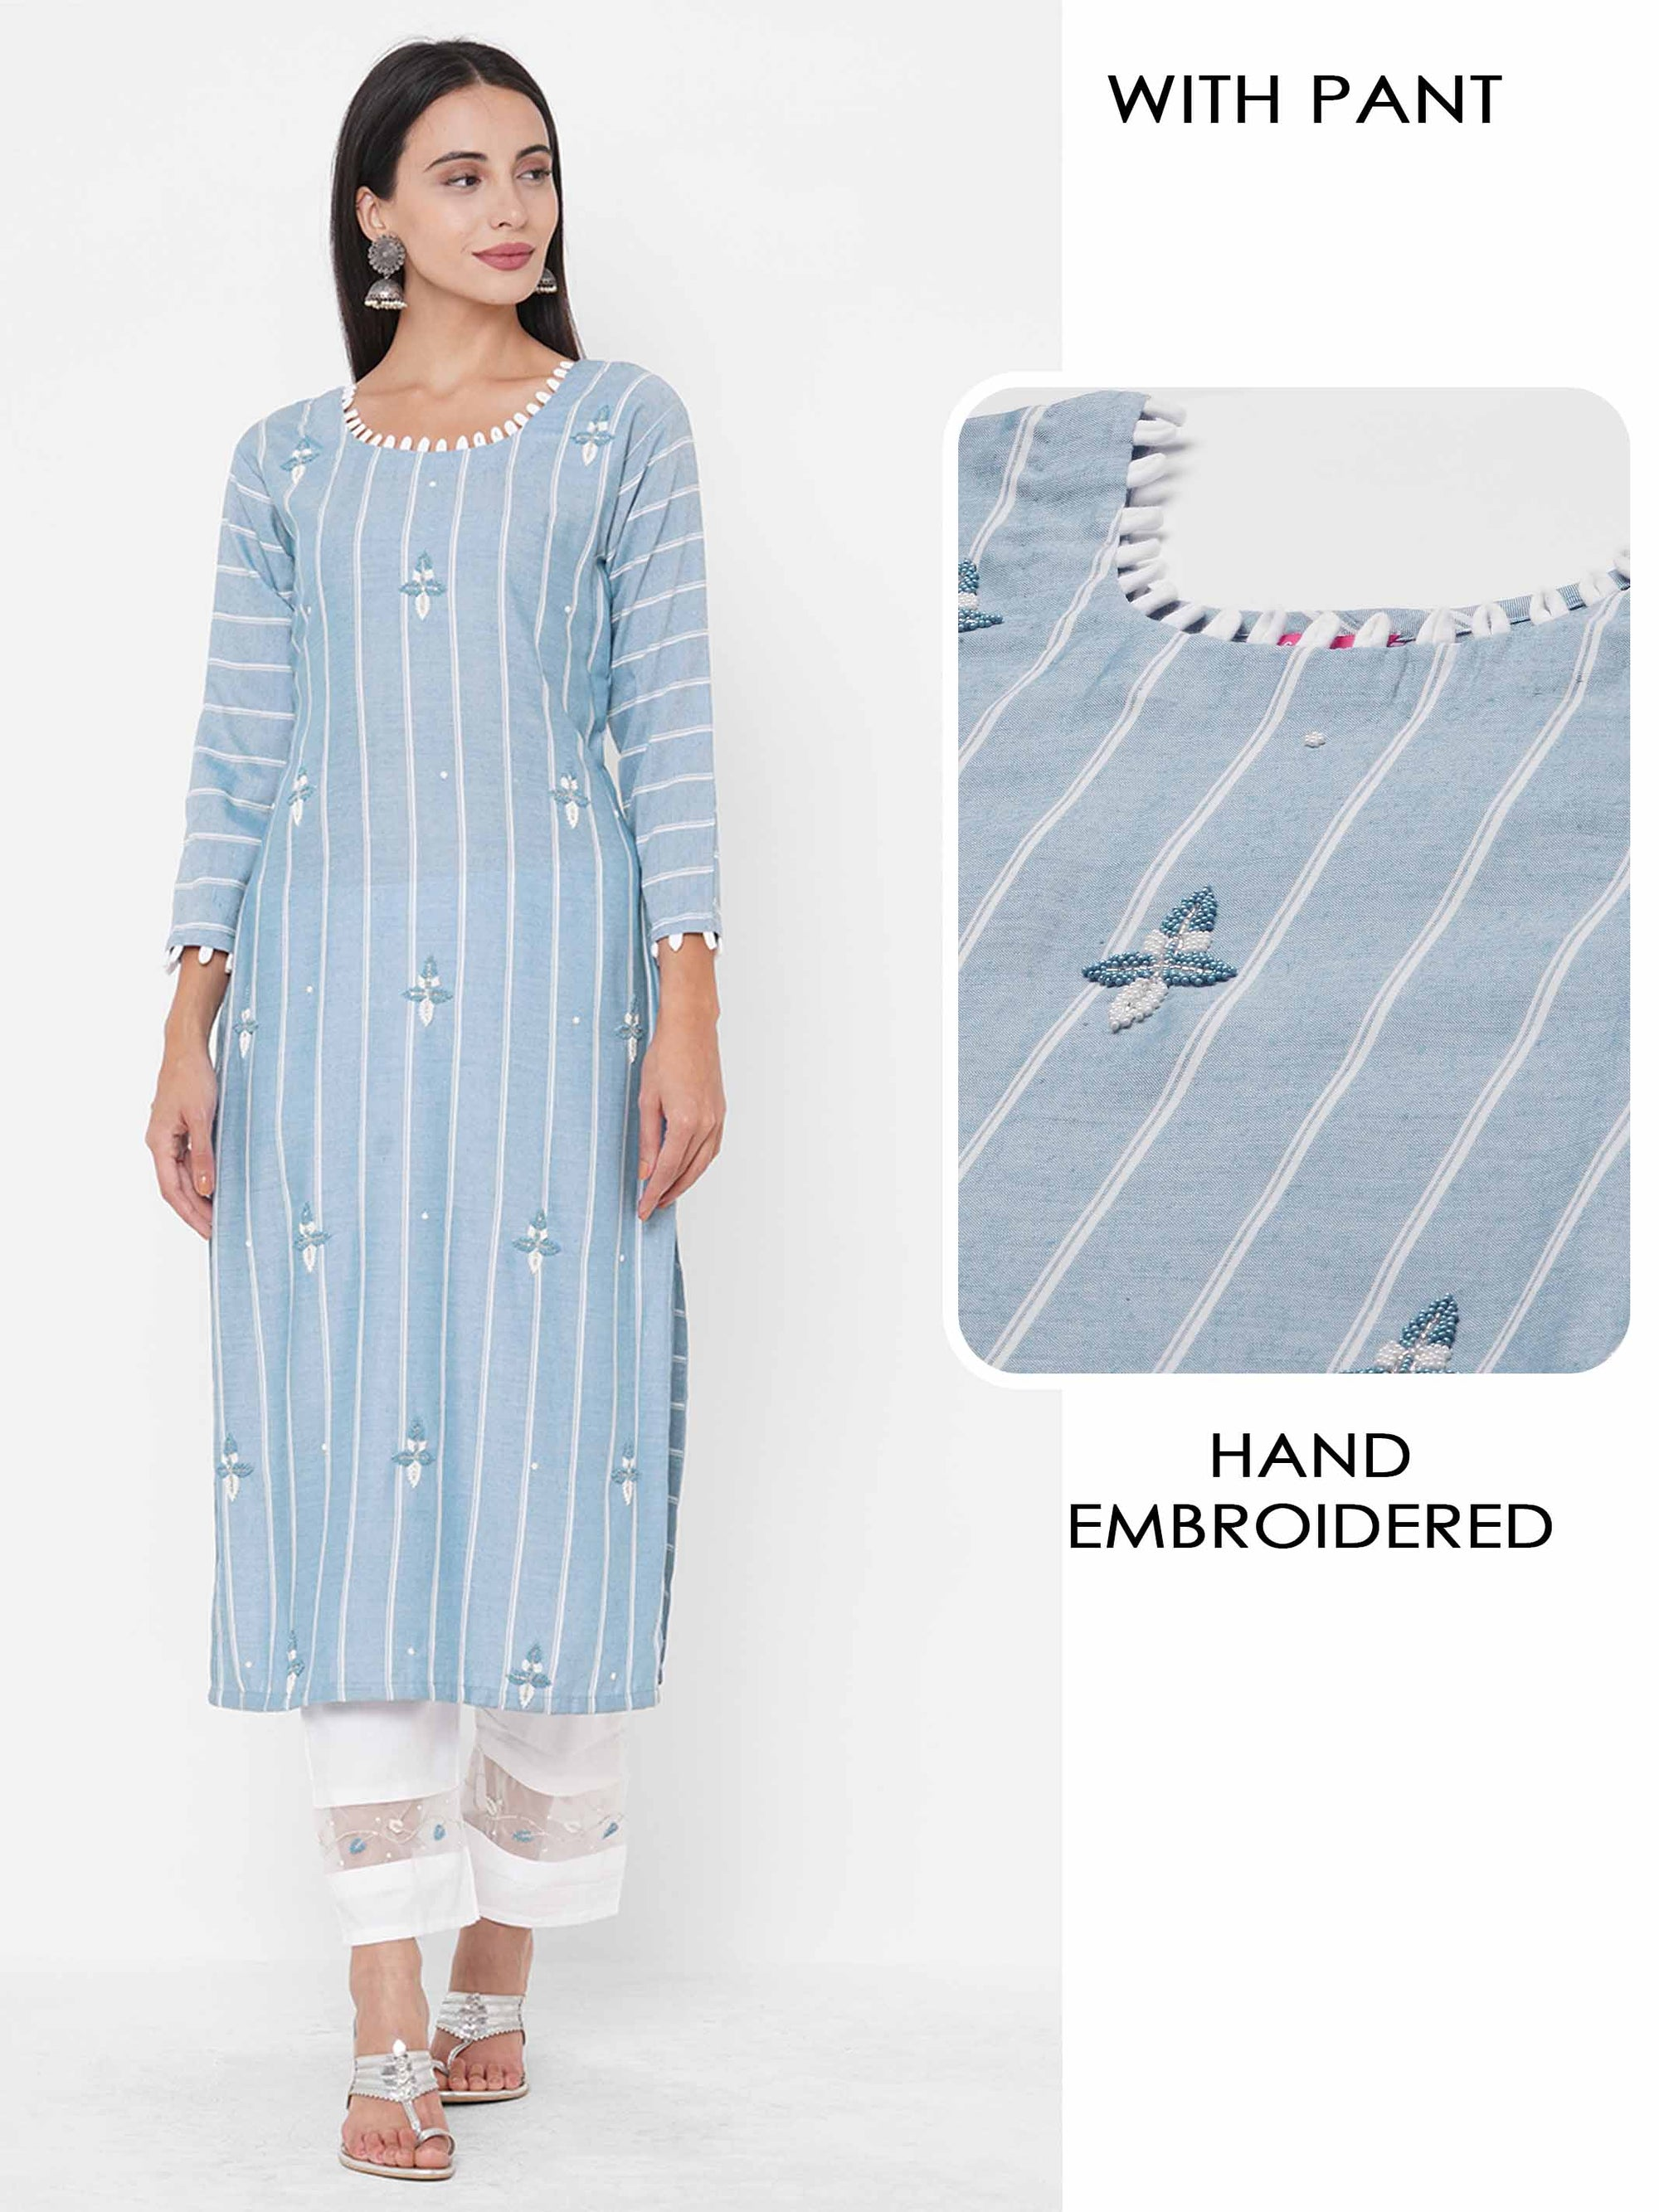 Striped & Floral Hand Embroidered Kurta with Hand Embroidered Pant - Powder Blue